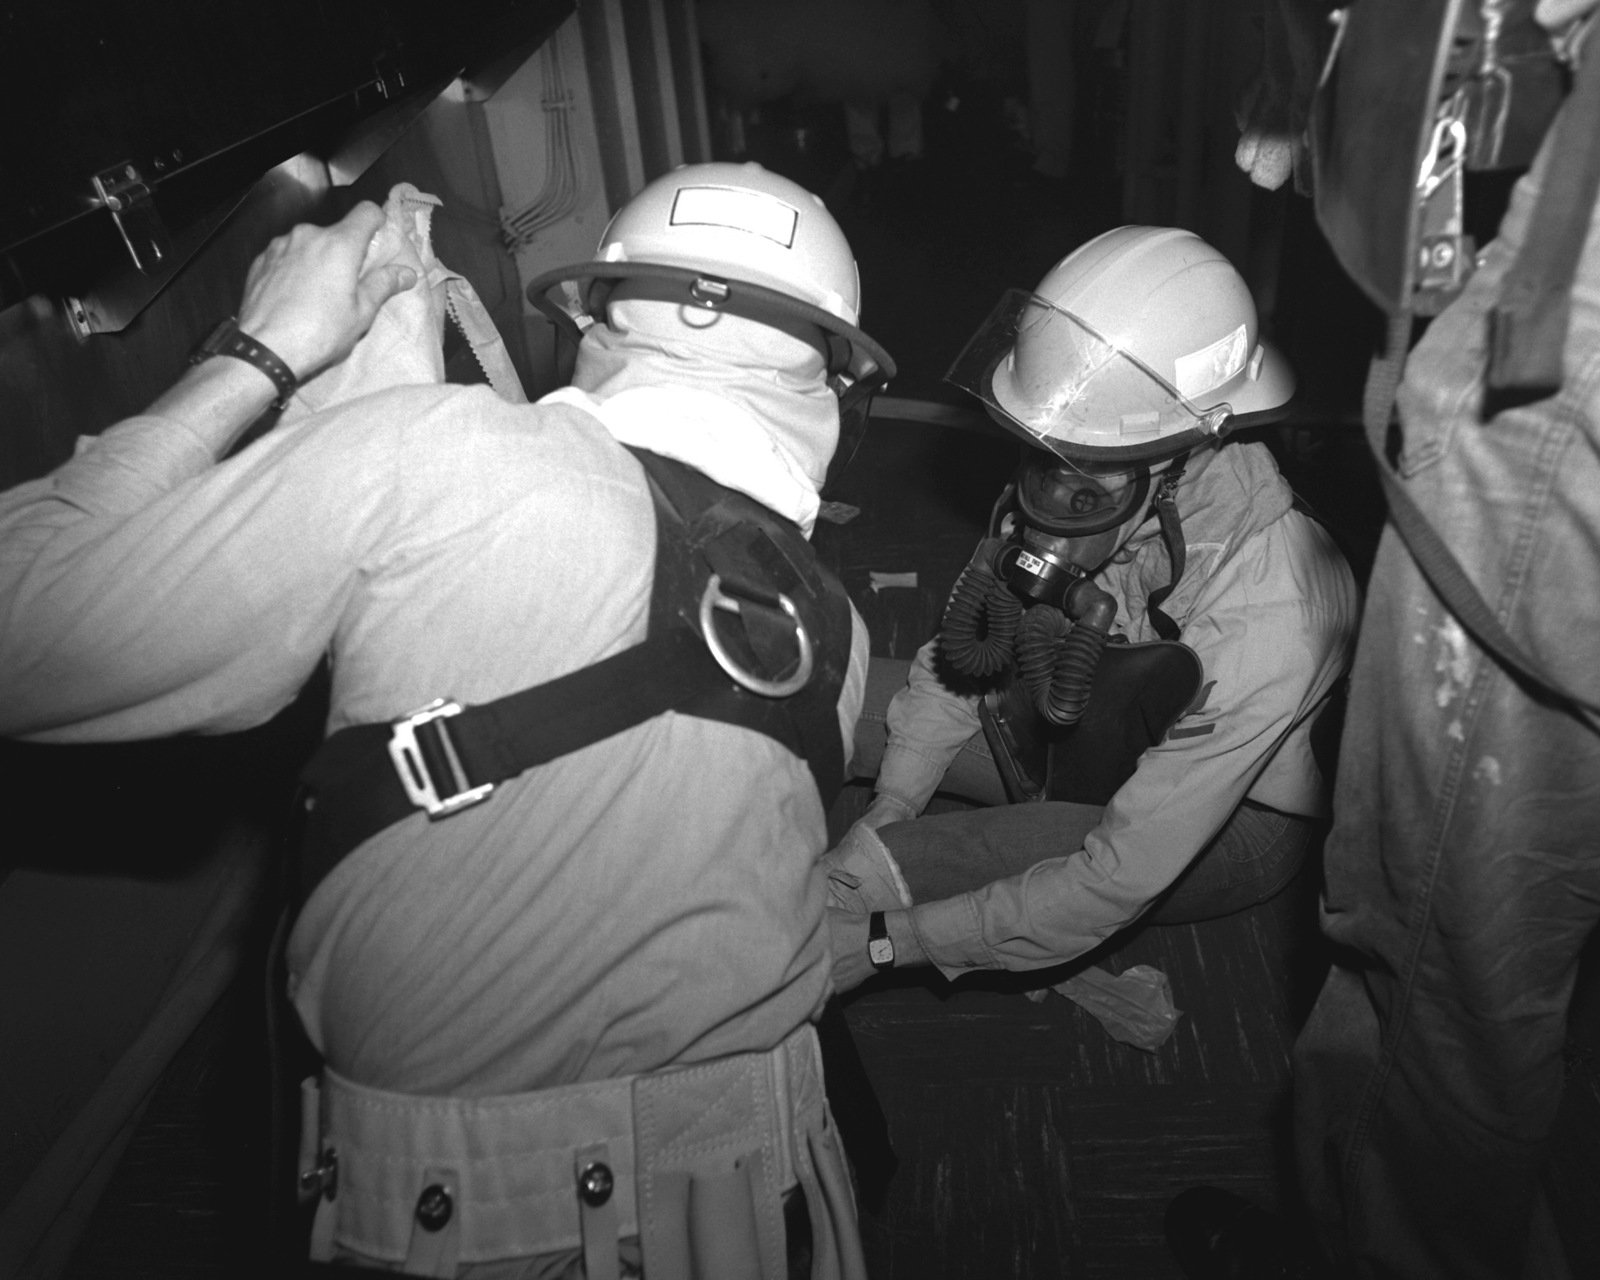 Firefighters stop to check on a simulatd casualty during a firefighting drill aboard the nuclear-powered aircraft carrier USS ABRAHAM LINCOLN (CVN-72). The LINCOLN's crew is receiving refresher training under the supervision of personnel from Fleet Training Group, Guantanamo Bay, Cuba